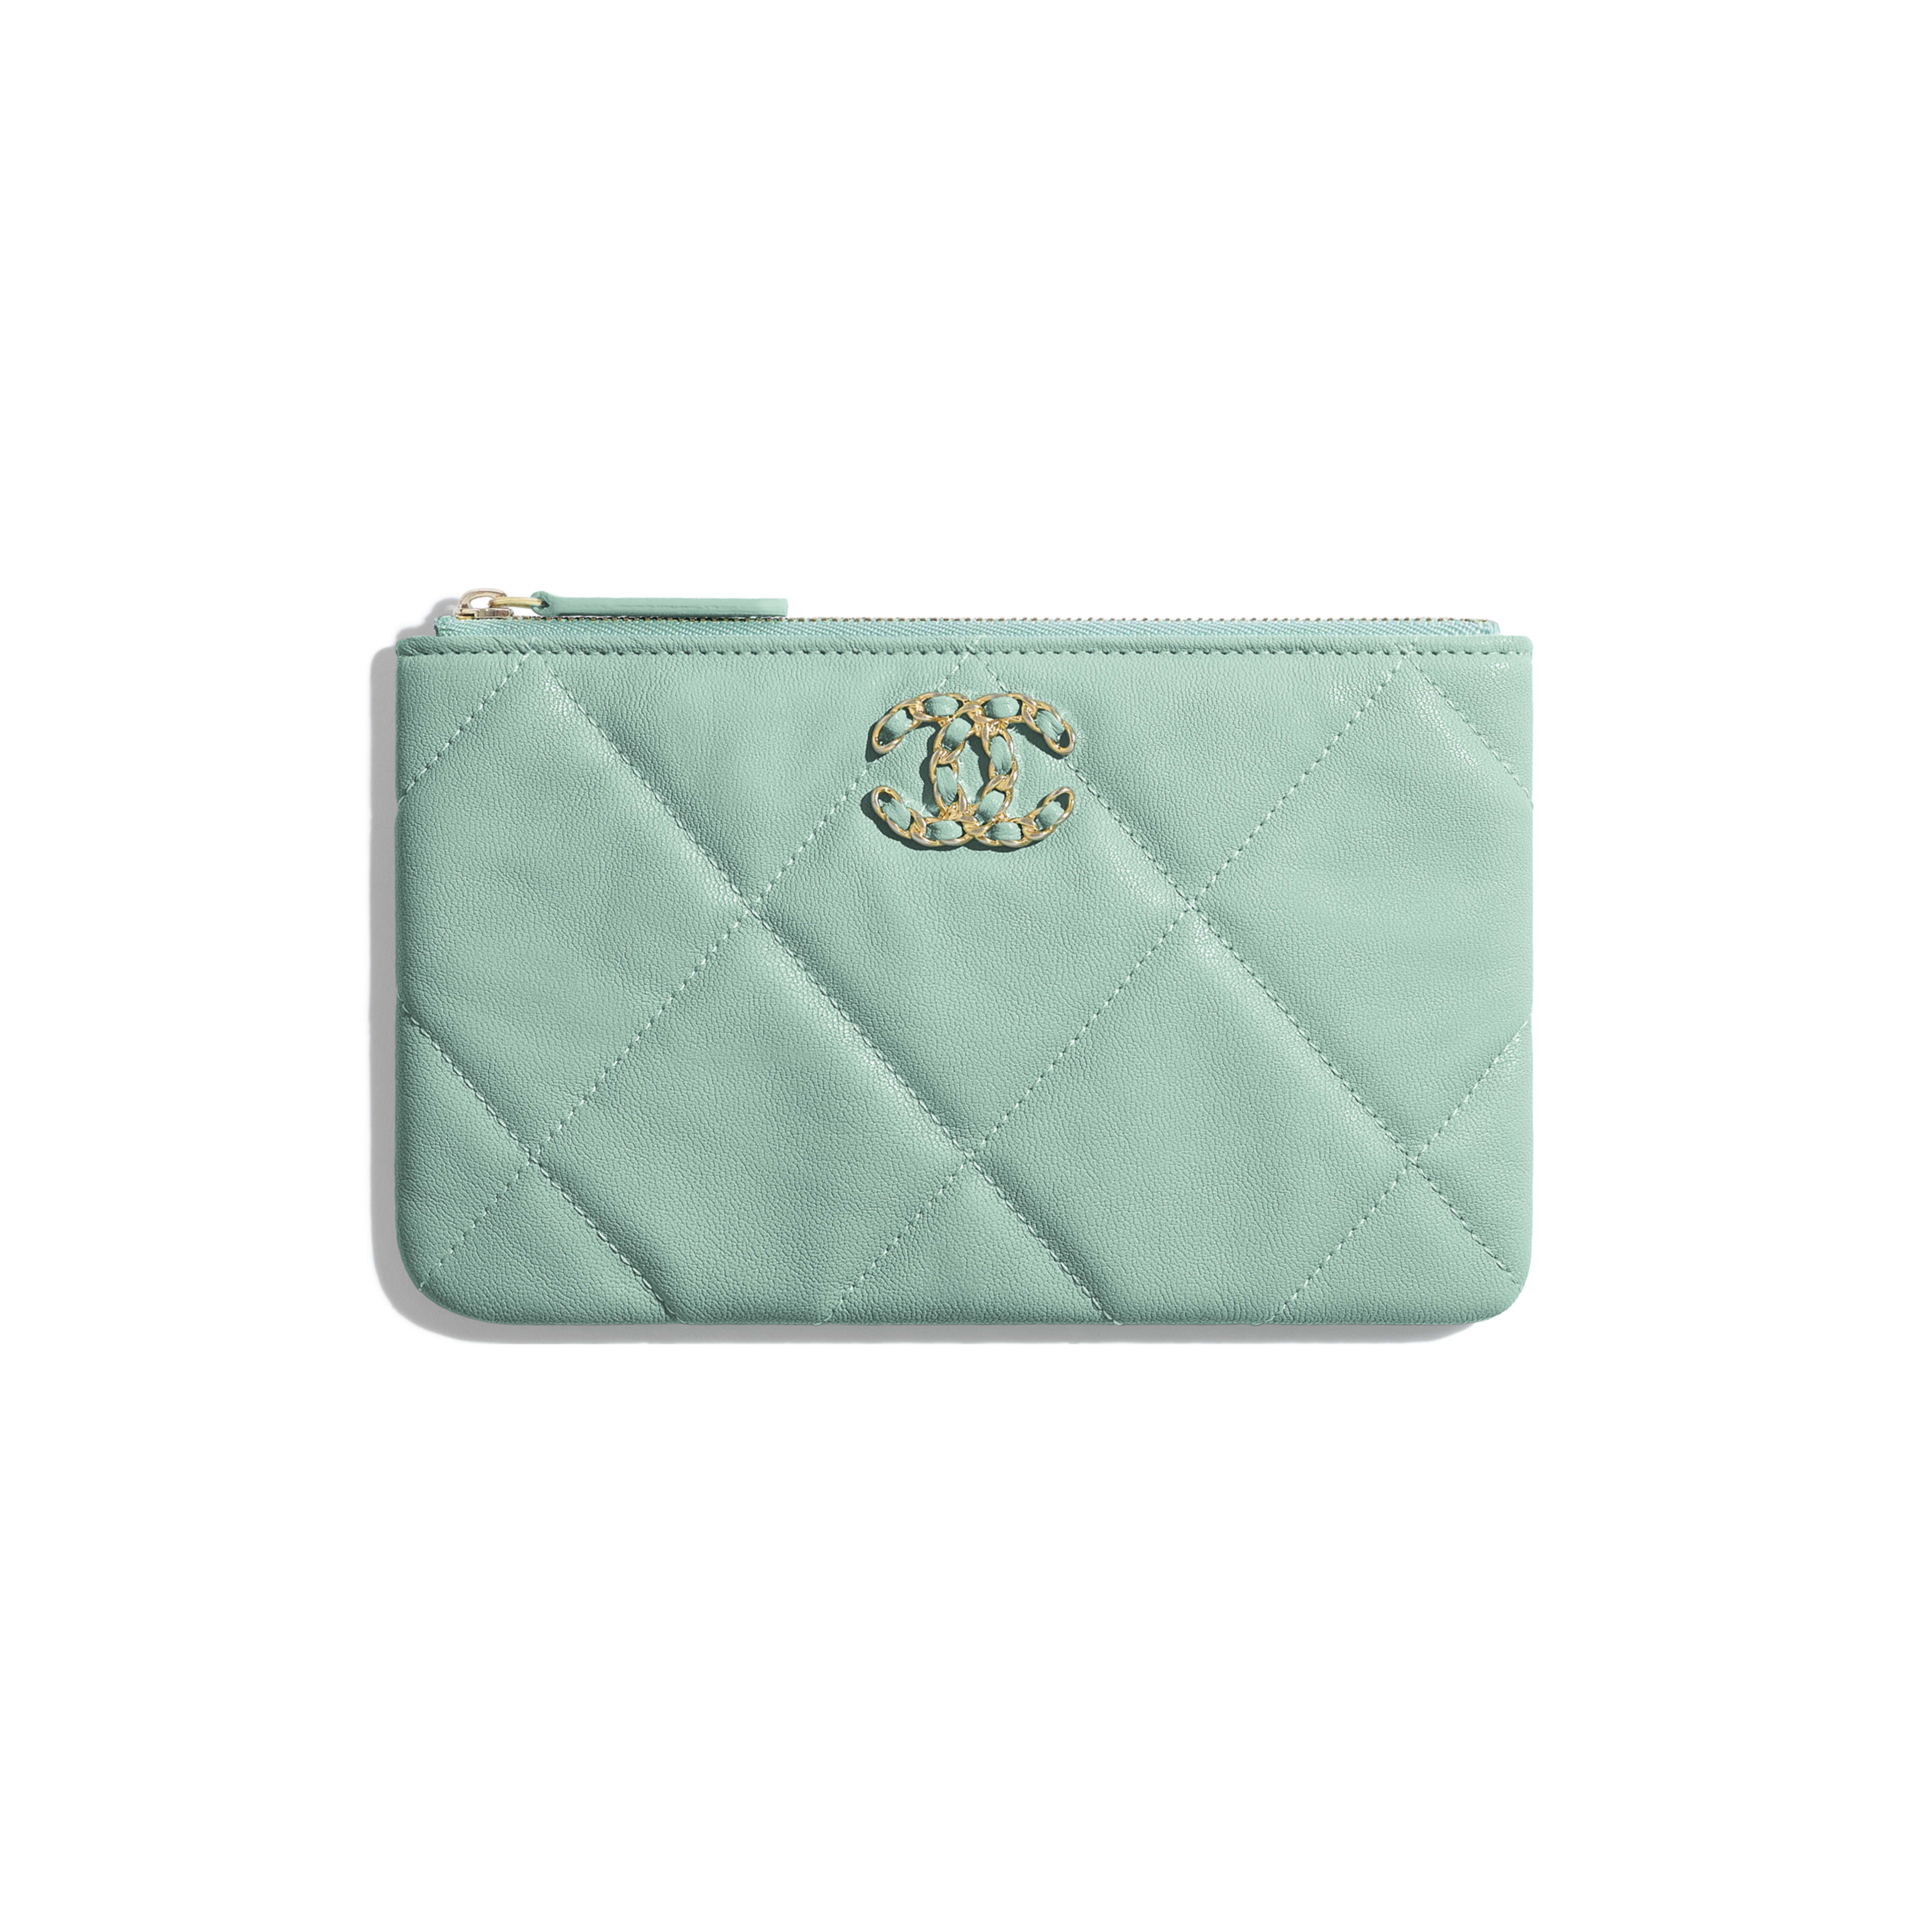 CHANEL 19 Small Pouch - Blue - Lambskin, Gold-Tone, Silver-Tone & Ruthenium-Finish Metal - Default view - see full sized version